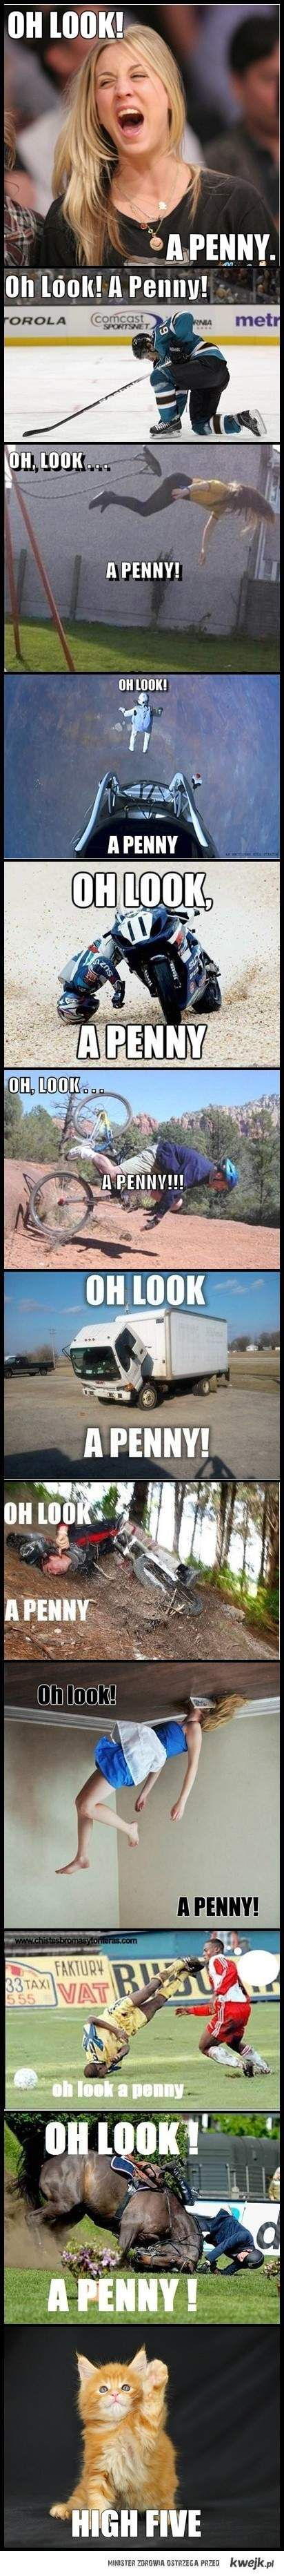 oh look a penny!